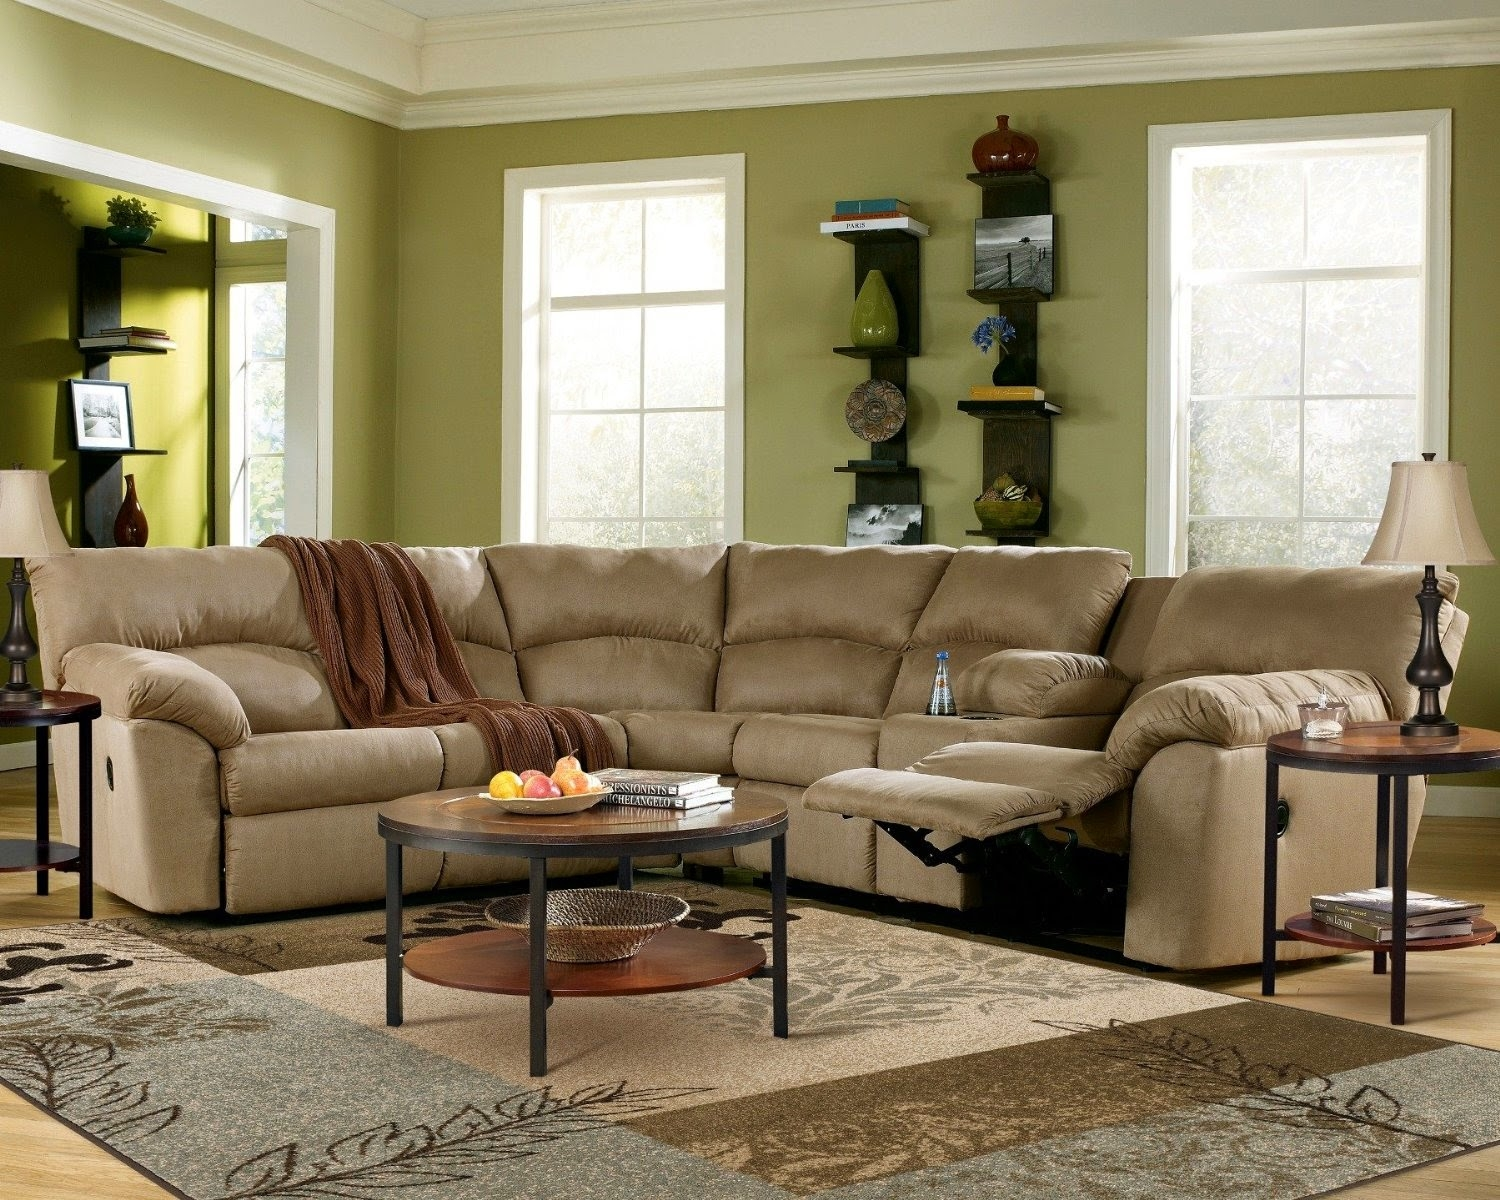 Curved Sectional Sofa Magnificent Large Sectional Sofas 197 Best Regarding Curved Sectional Sofa With Recliner (Image 3 of 15)